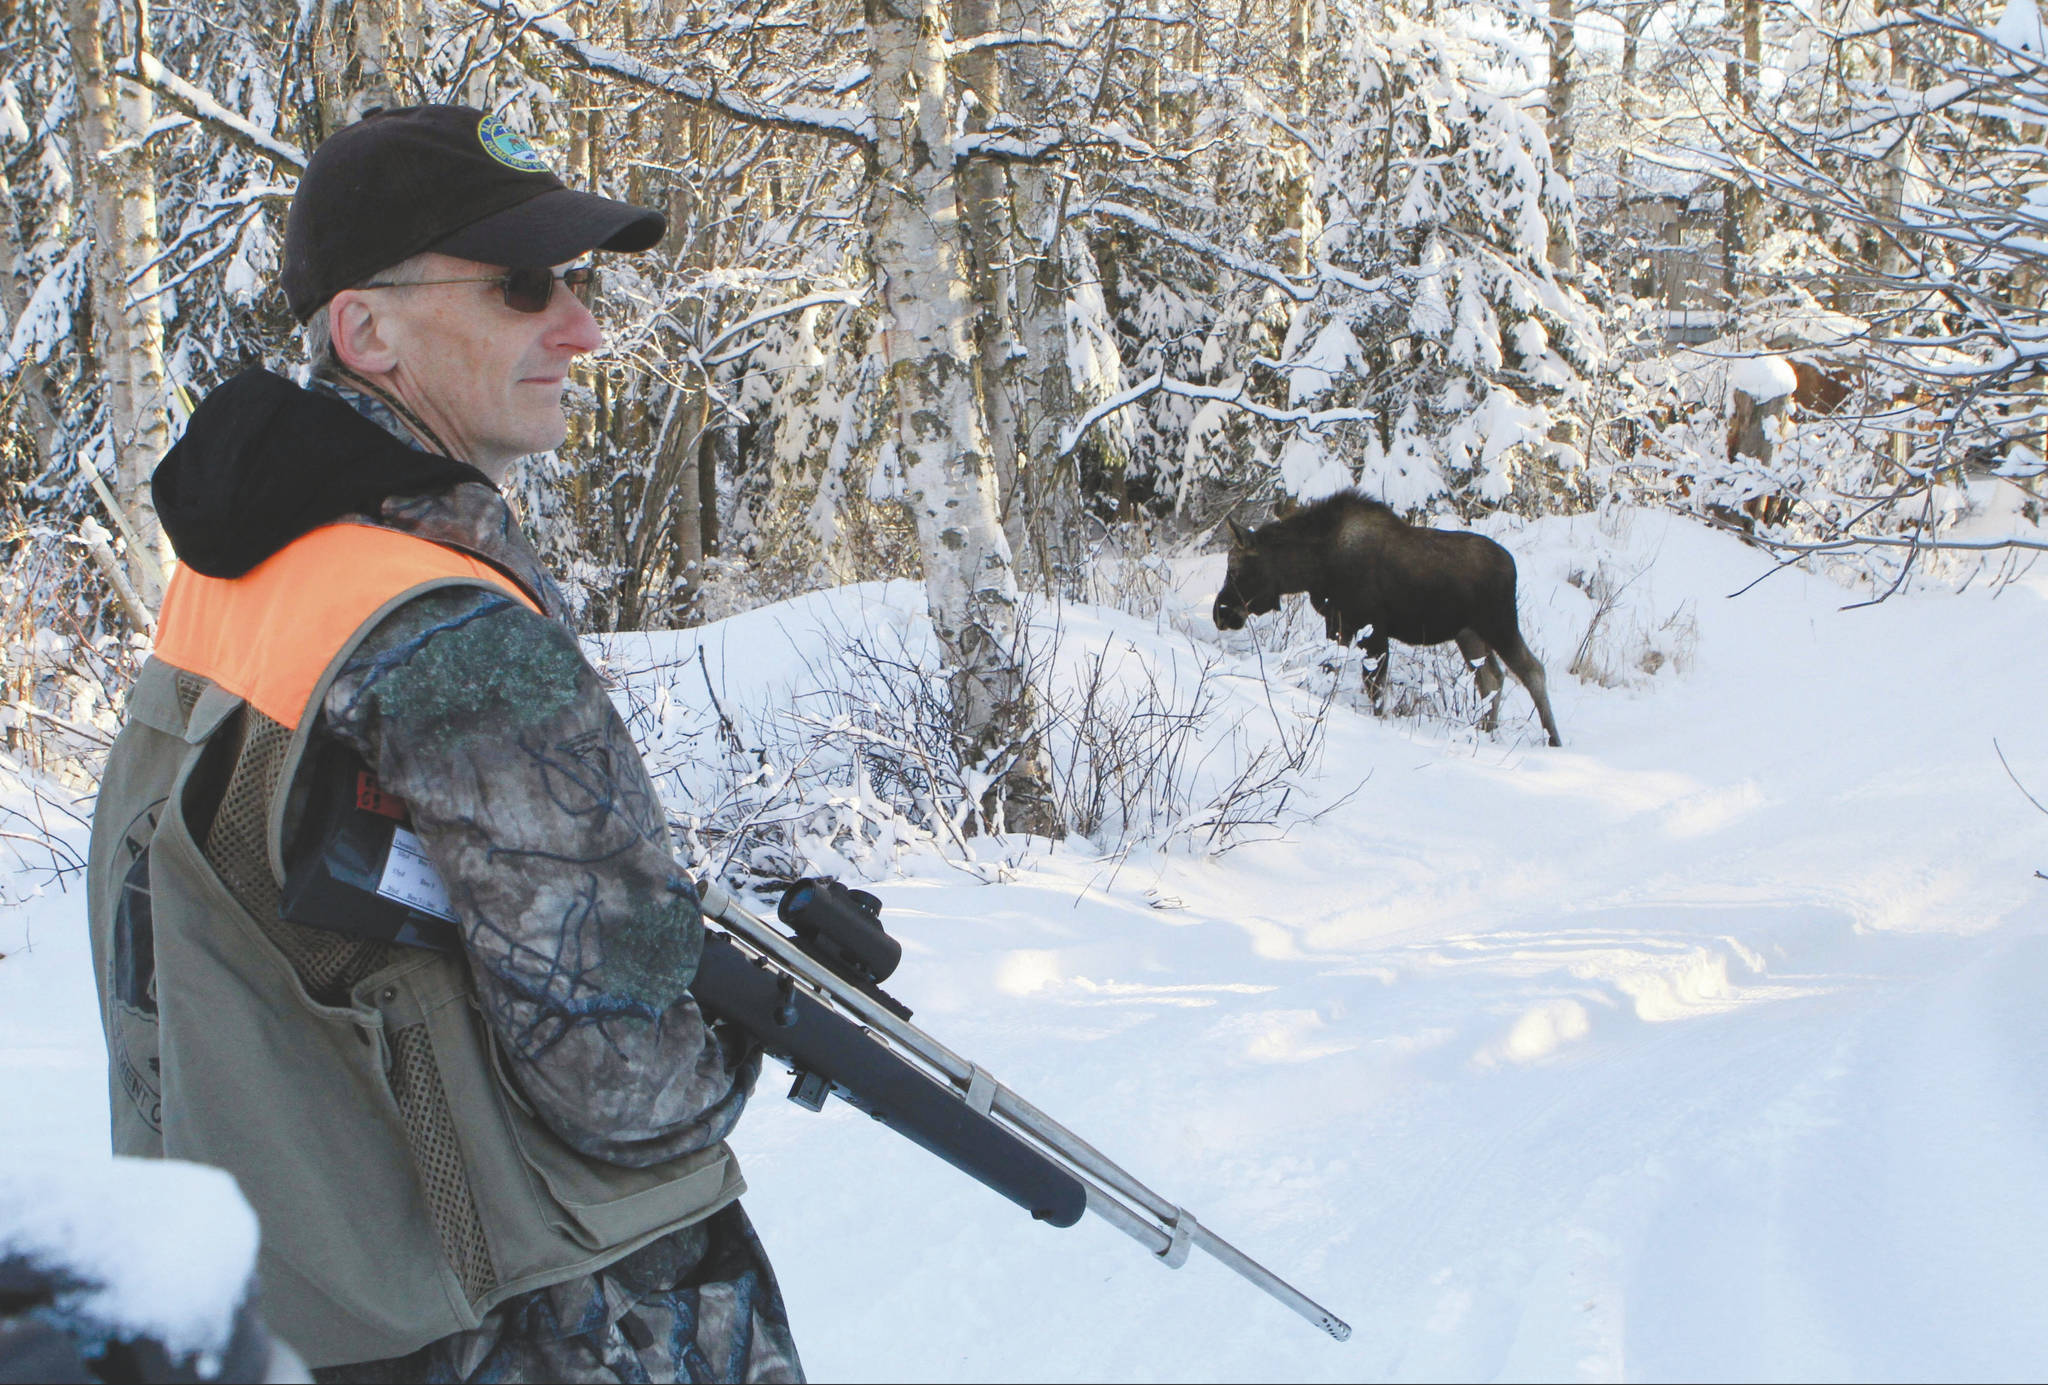 In this Feb. 23, 2018, file photo, Dave Battle of the Alaska Department Fish and Game waits for a moose to move off after he fired a dart into its side that's collects a skin sample in Anchorage, Alaska. Flight rules over the city prevent the department from conducting traditional aerial surveys of moose so the department conducts a ground survey. Using reports called in by citizens, biologists drive to neighborhoods and collect DNA samples with the dart projectors that look like hunting rifles. (AP Photo/Dan Joling, File)